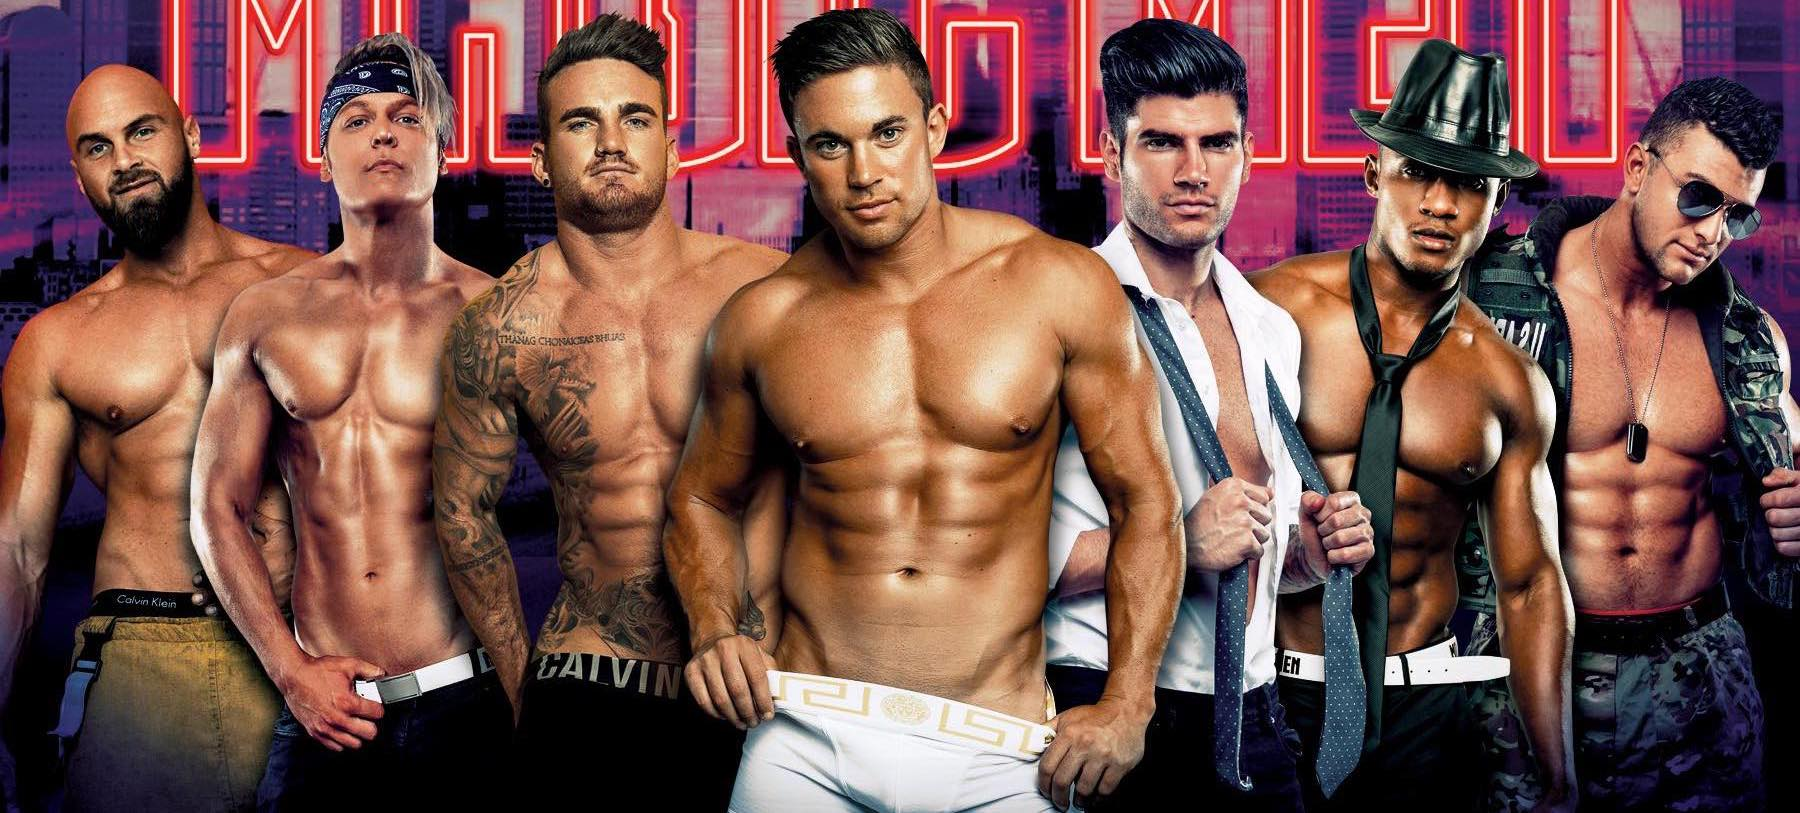 Top 5 Best Male Strippers In Melbourne